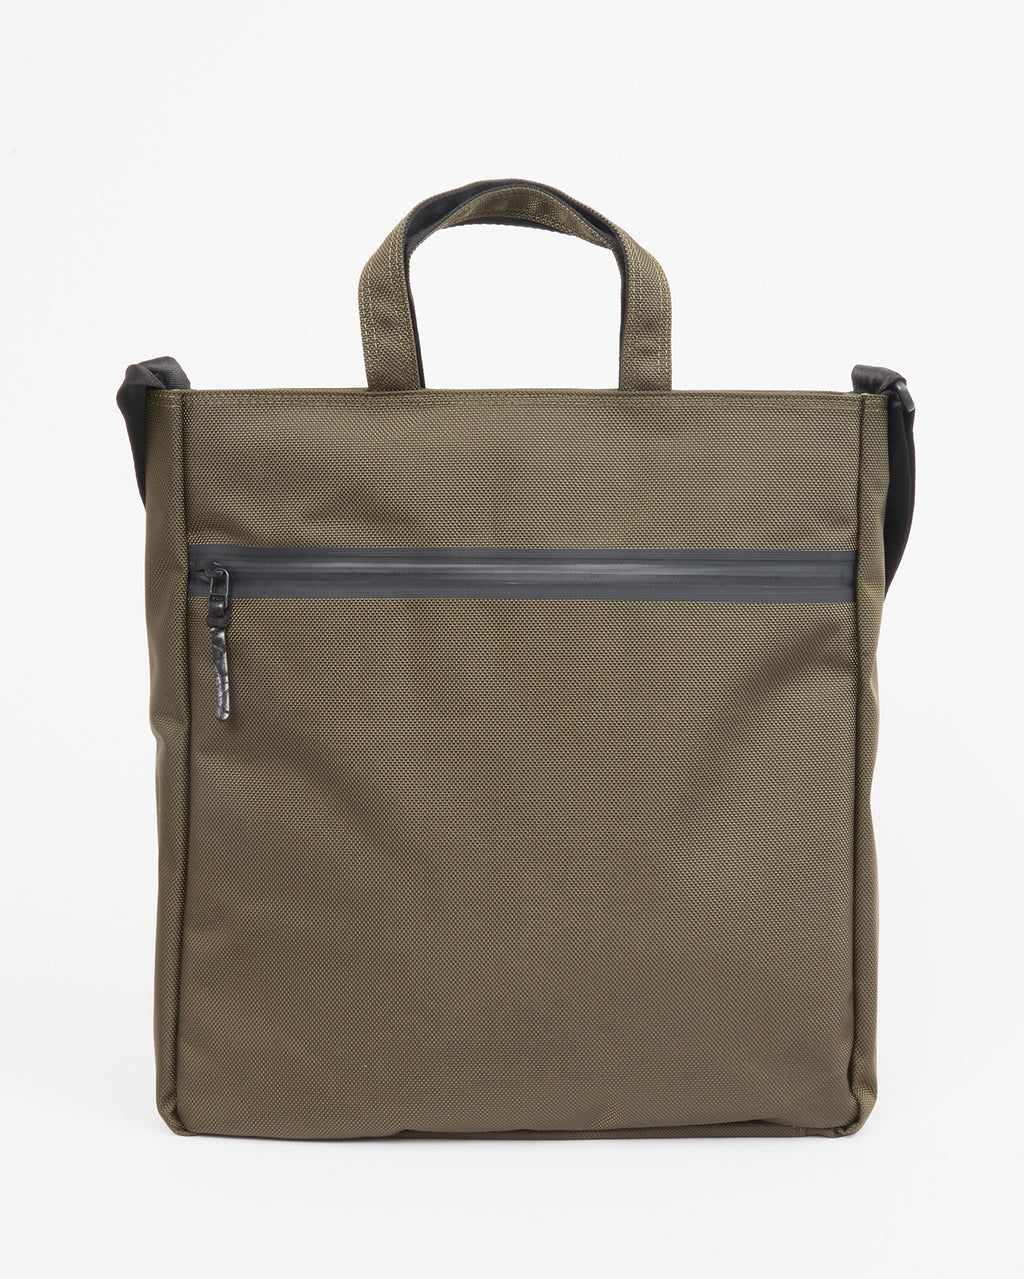 Square Tote Bag – Khaki